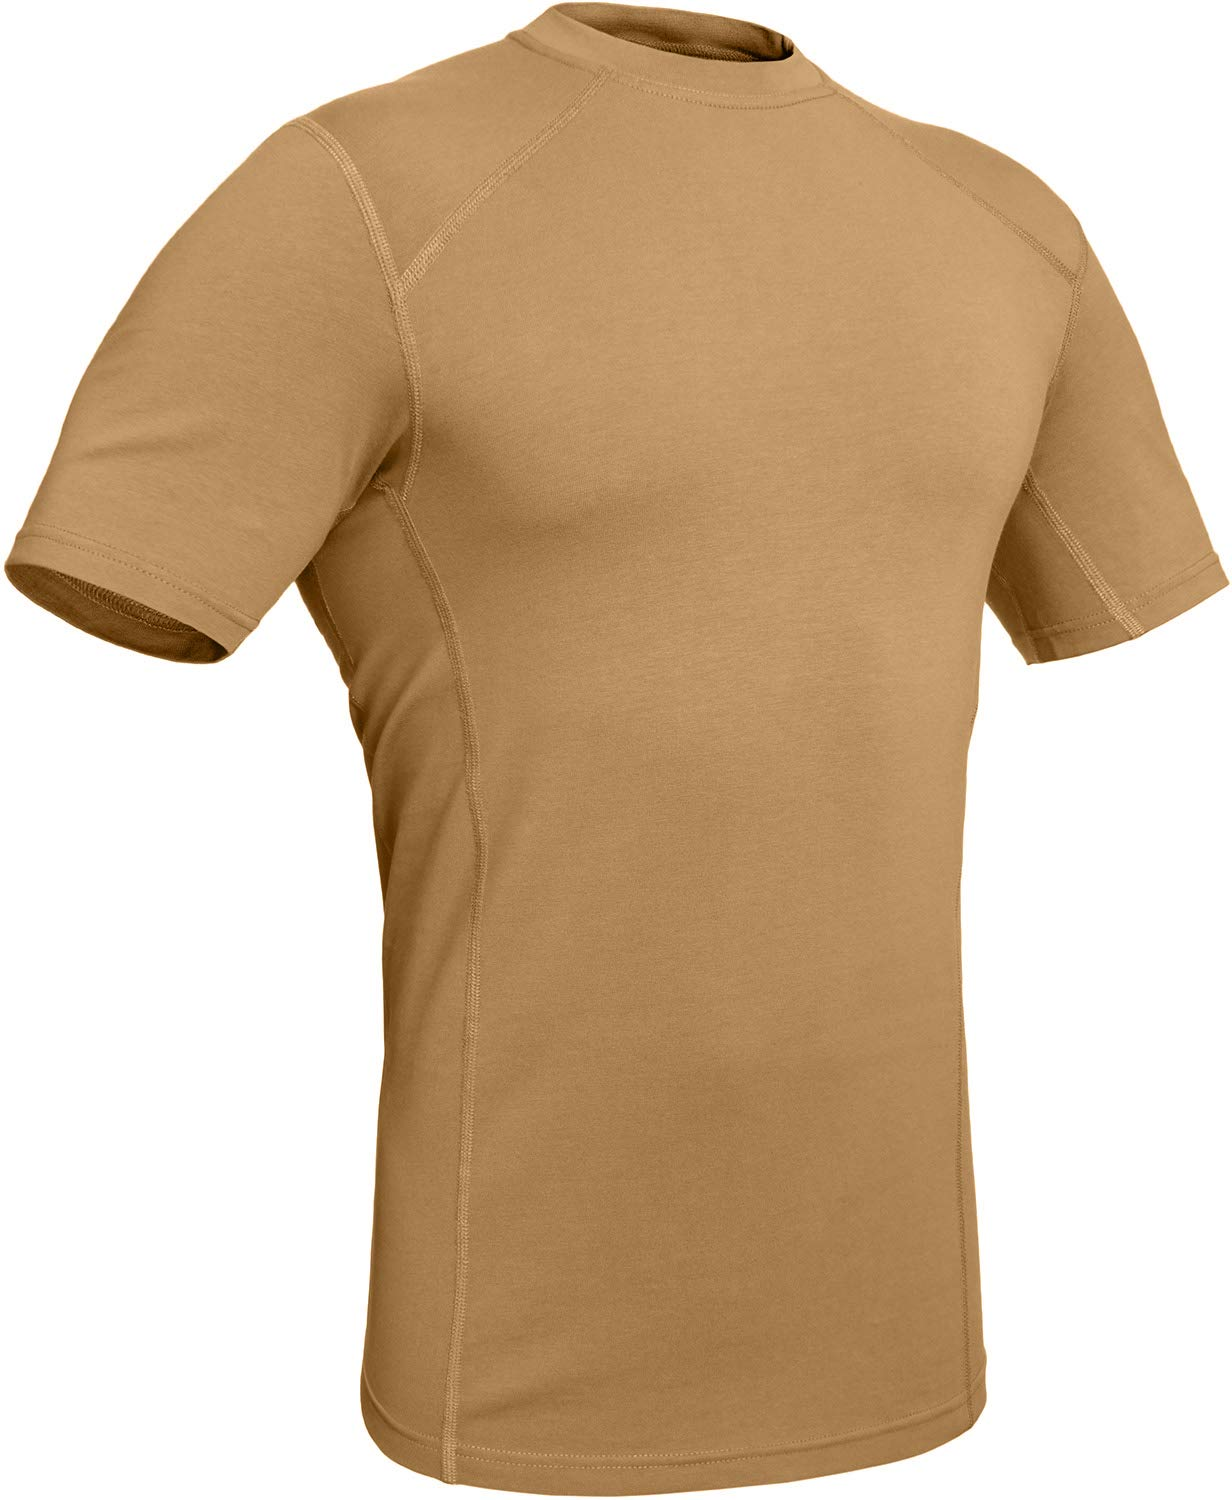 281Z Military Stretch Cotton Underwear T-Shirt - Tactical Hiking Outdoor - Punisher Combat Line (Coyote Brown, Large) by 281Z